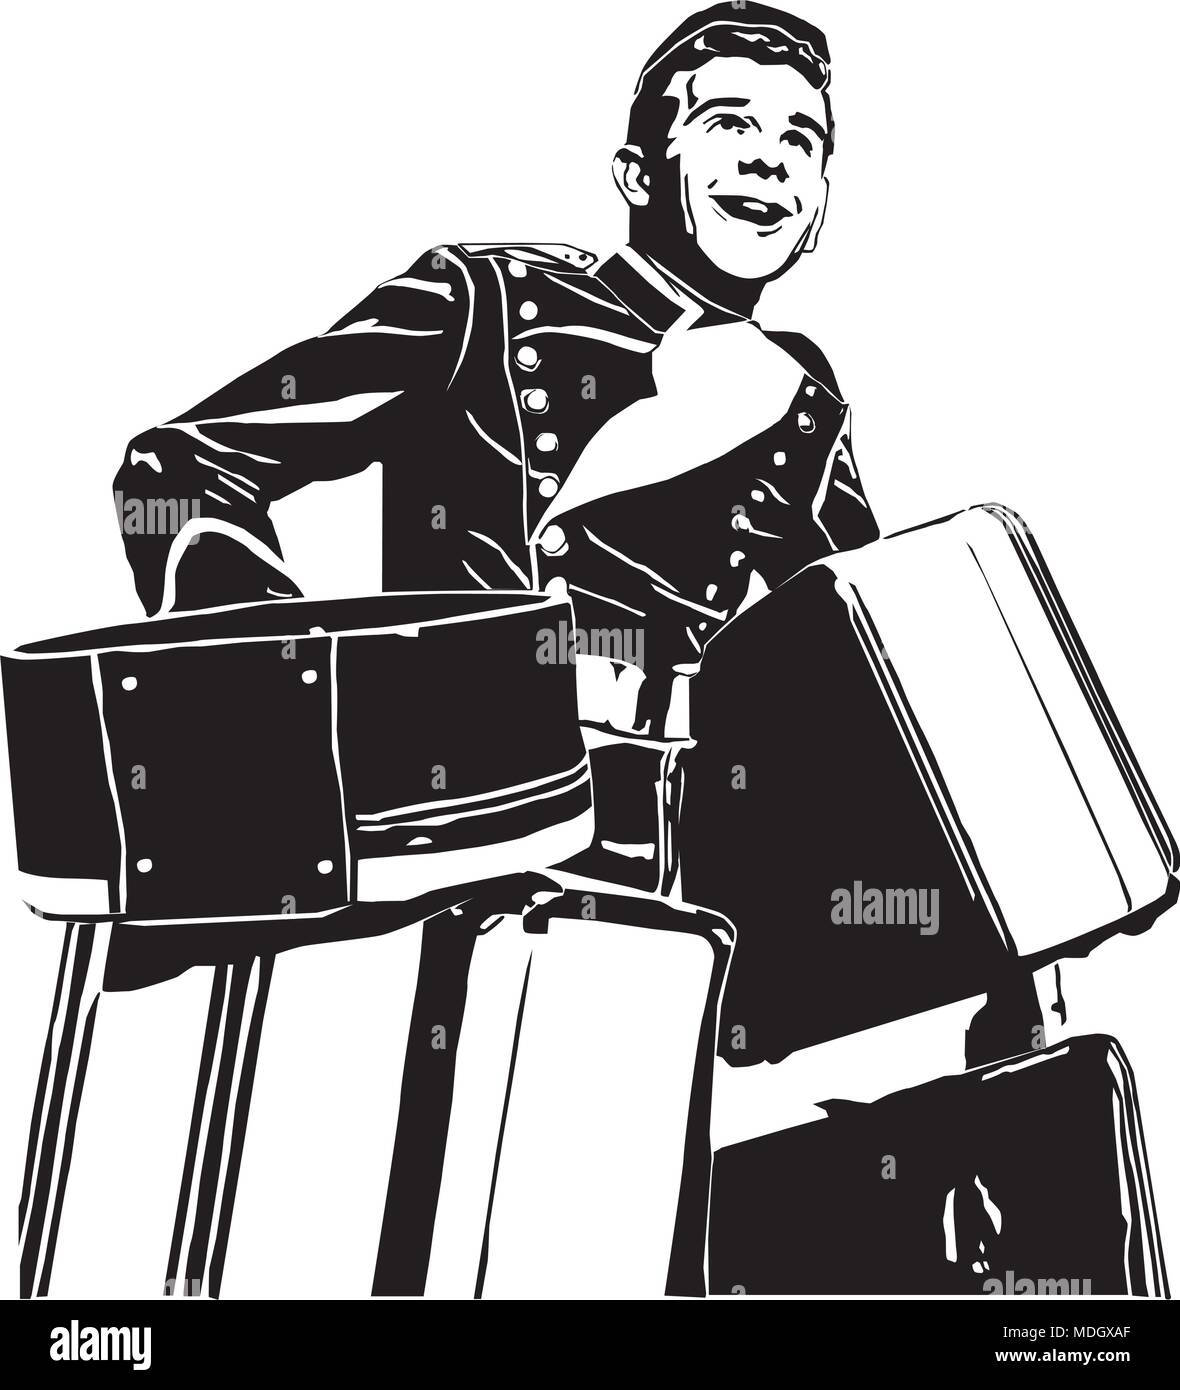 Bellhop - Retro Clipart Illustration - Stock Image